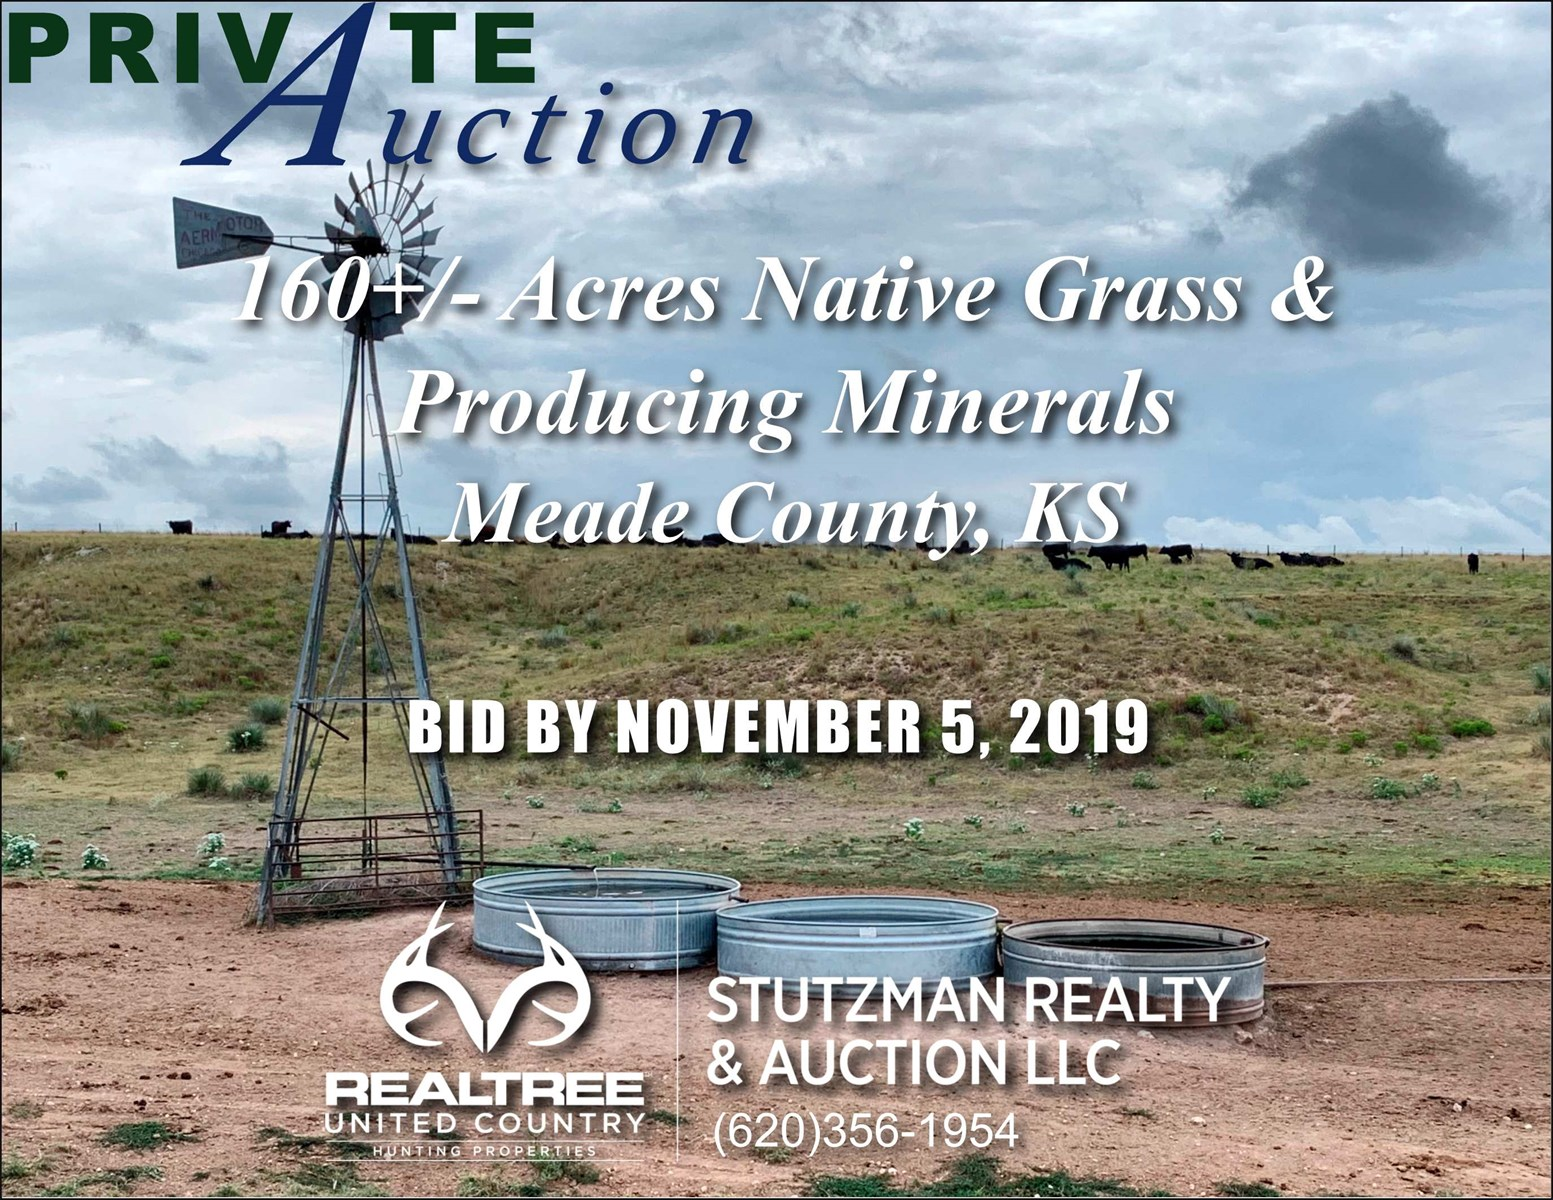 MEADE COUNTY, KS LAND FOR SALE